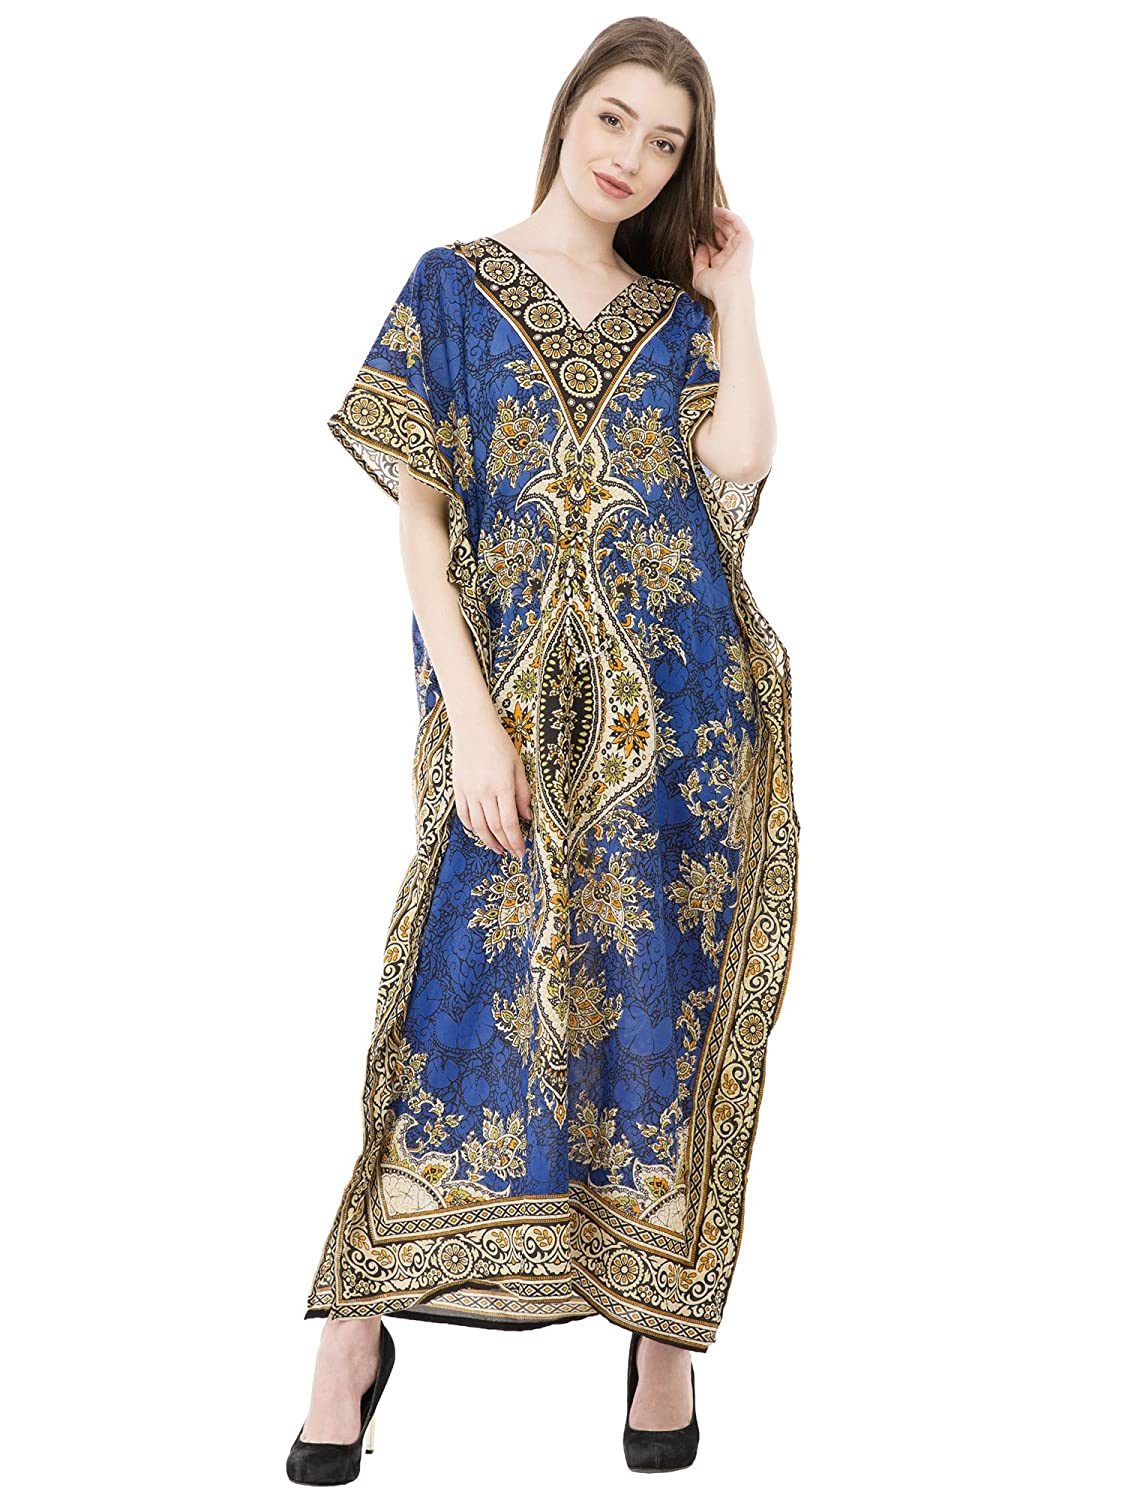 SKAVIJ Kaftan Dresses for Women V Neck Caftan Plus Size Long Nightgown Cover up CL003